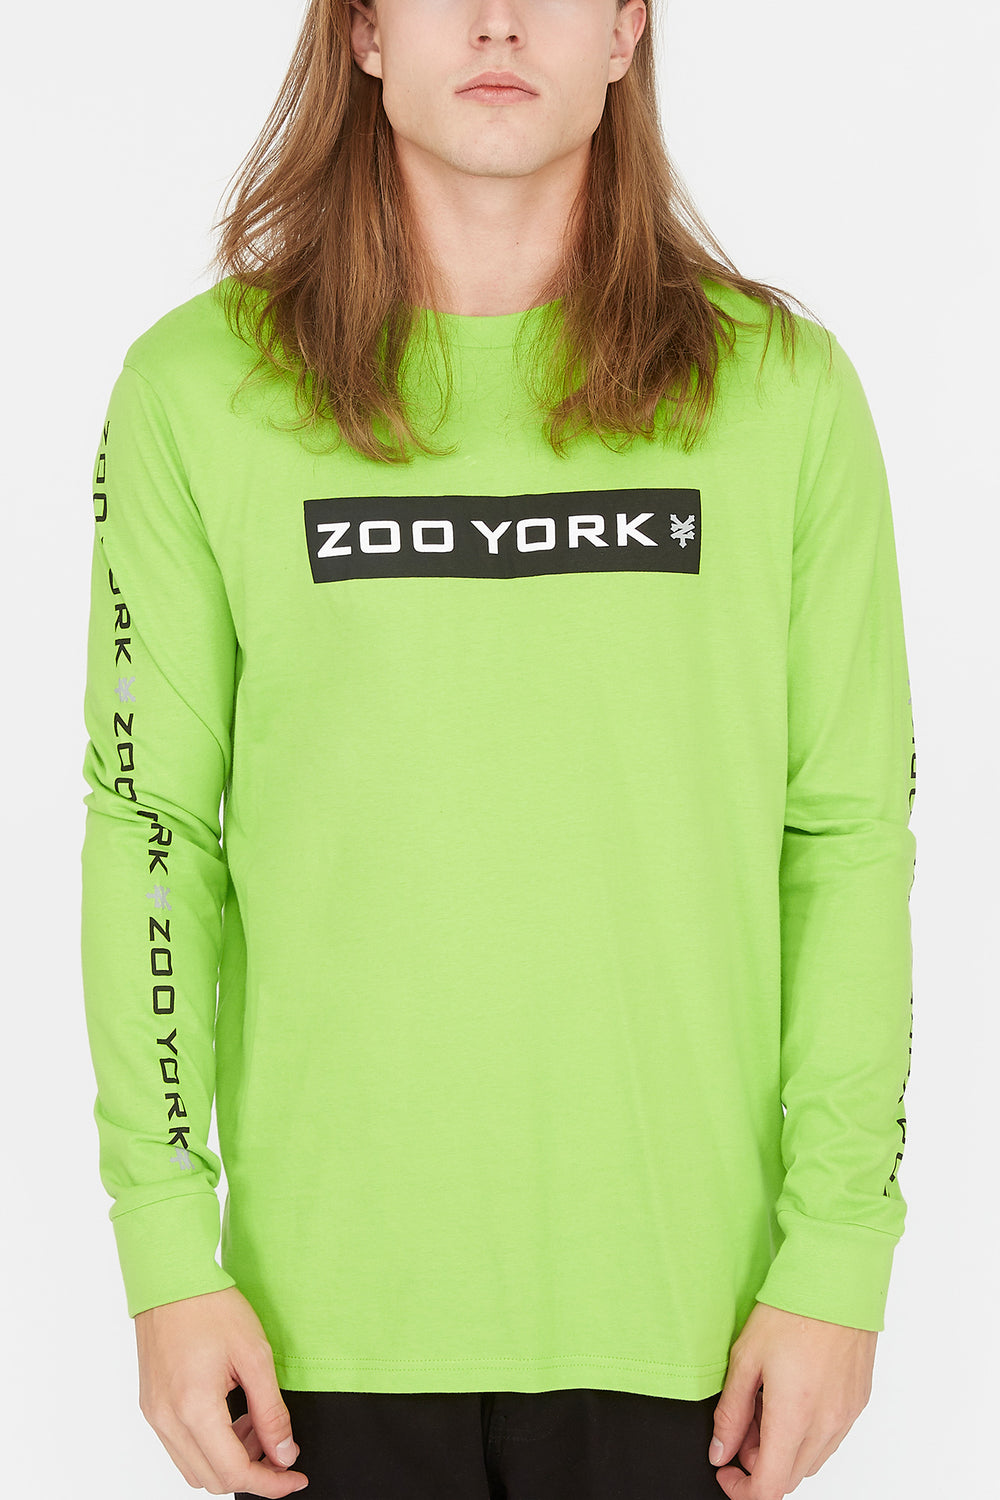 Zoo York Mens Box Logo Long Sleeve Green